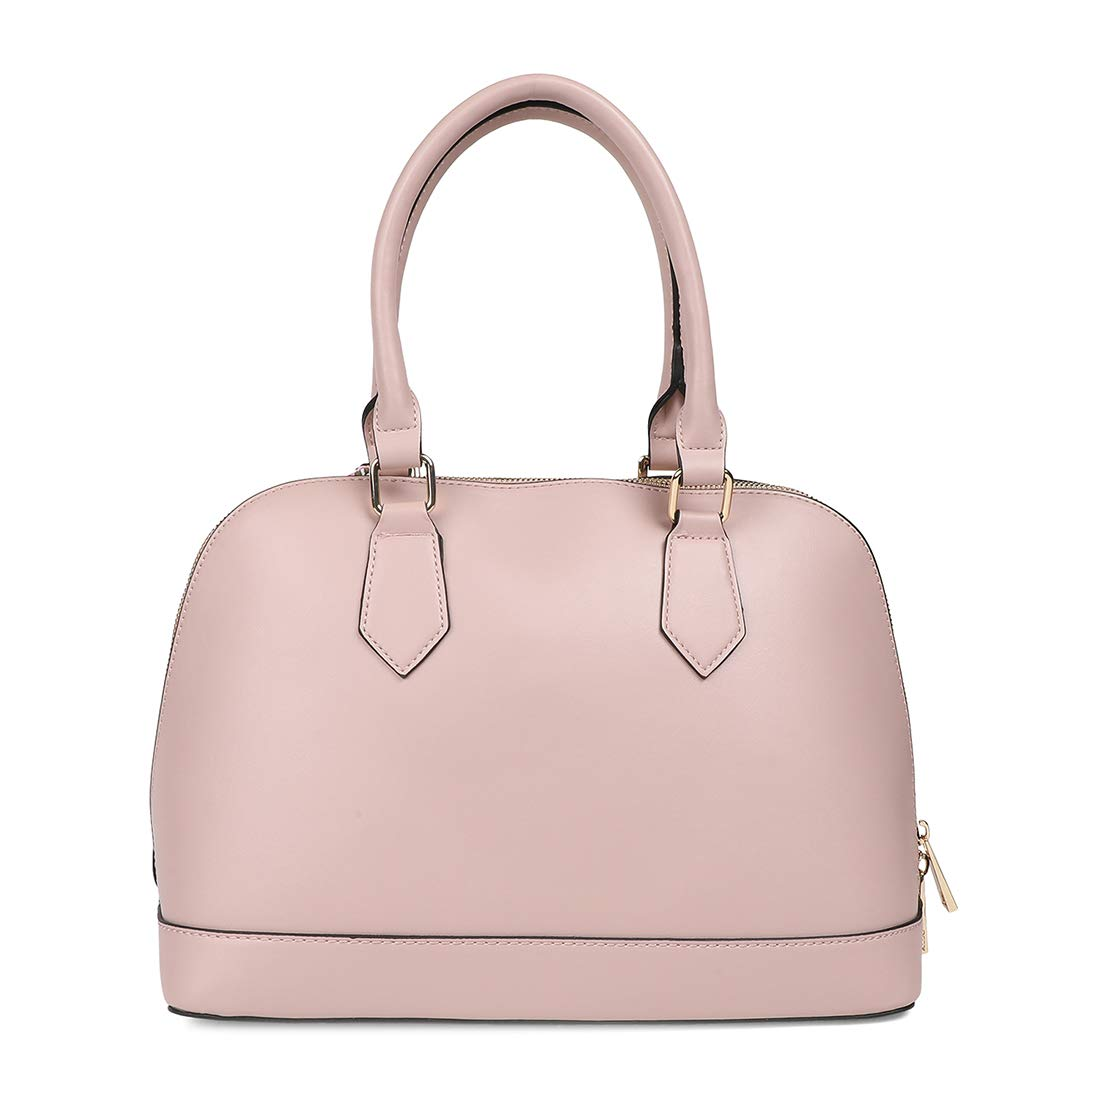 3d4eec2541 Aldo Handful Pink Handbag For Women: Amazon.in: Shoes & Handbags